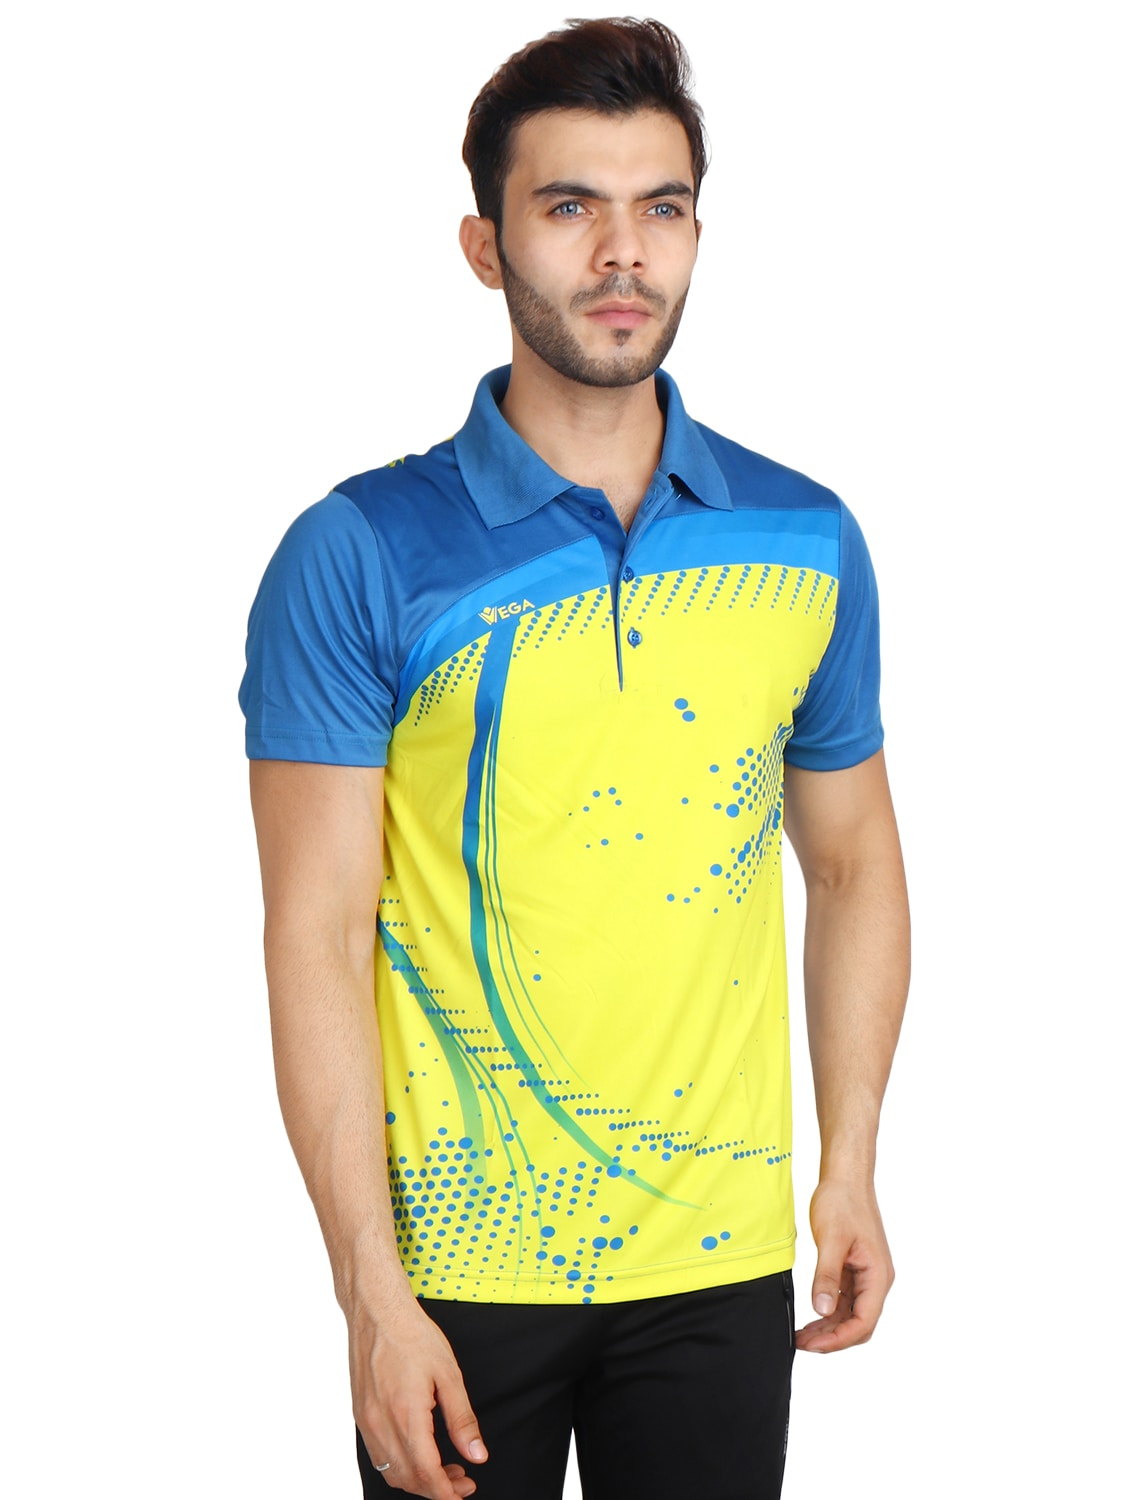 d81c6955 Buy Yellow Polyester Tshirt for Men from Vega for ₹573 at 56% off | 2019  Limeroad.com